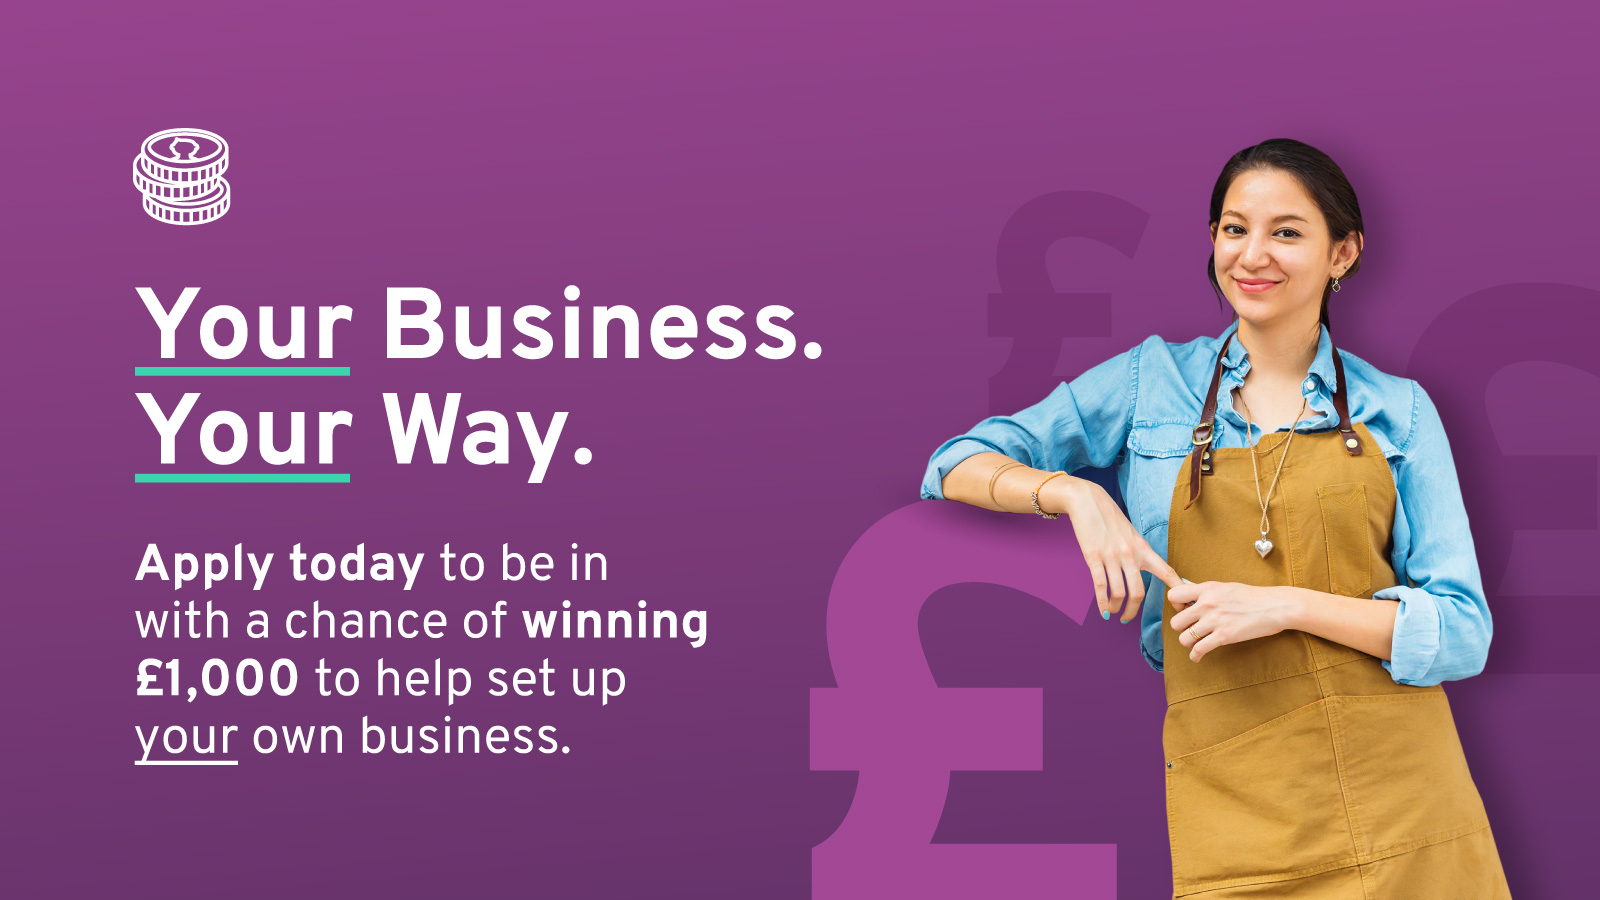 Young business woman smiling on the brand campaign graphic.